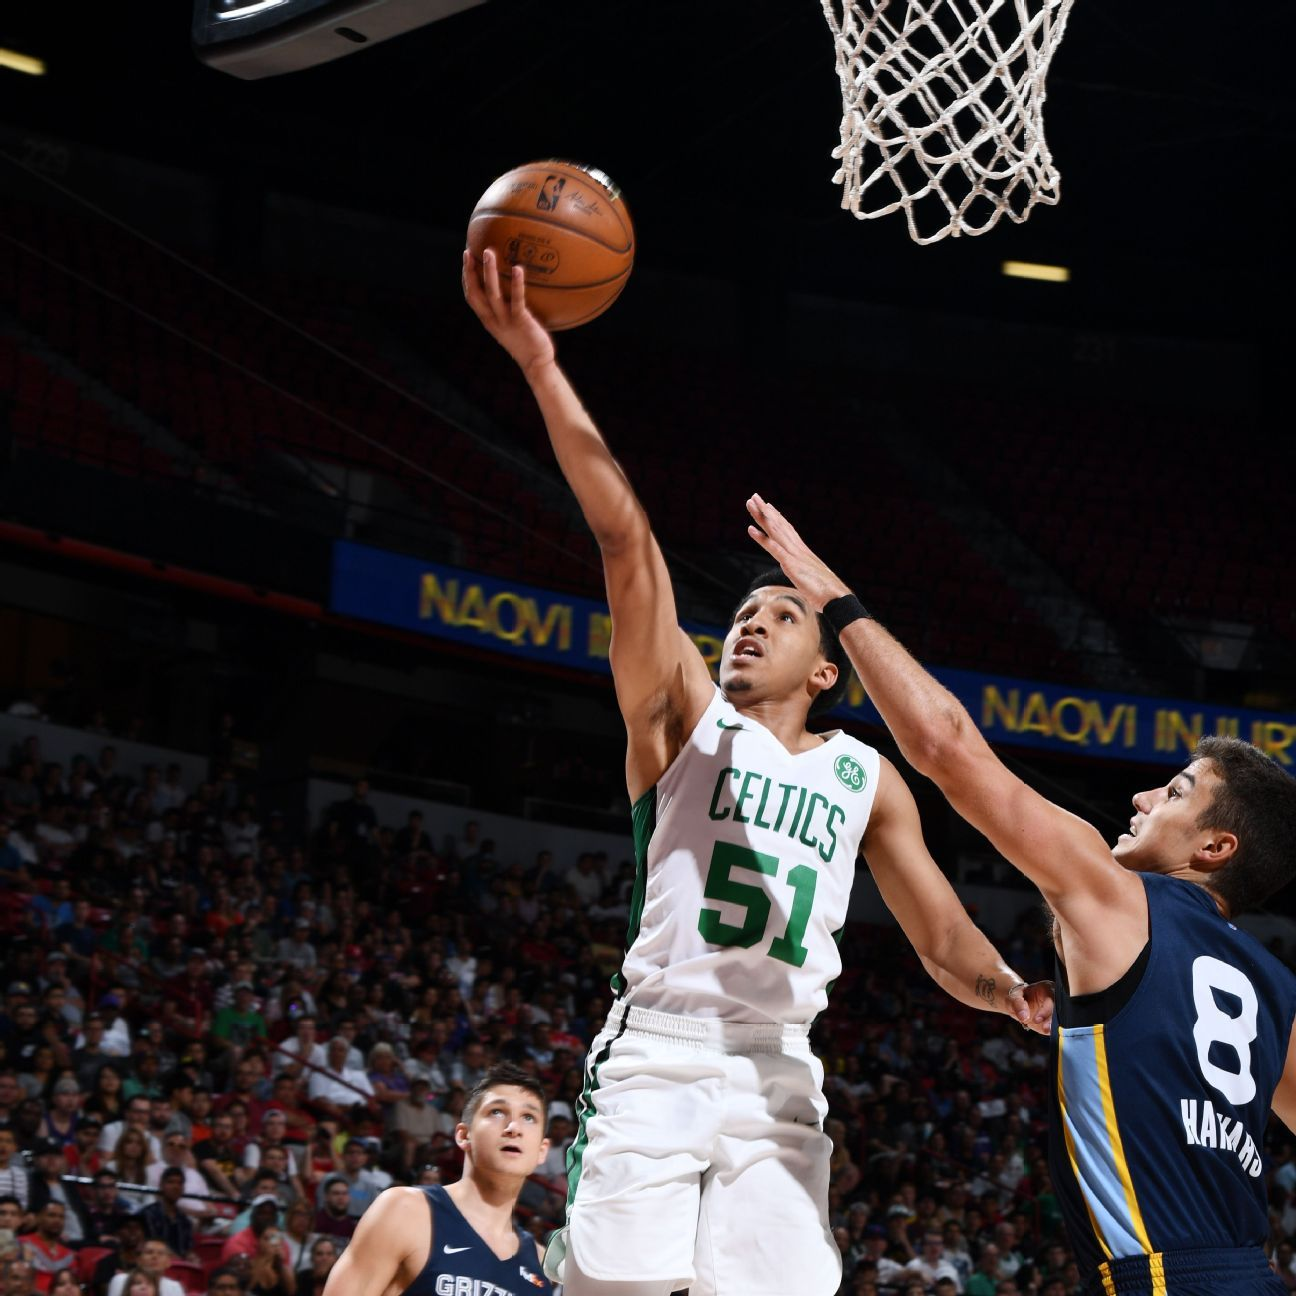 Celts' Waters nets 16 two days after dad's death